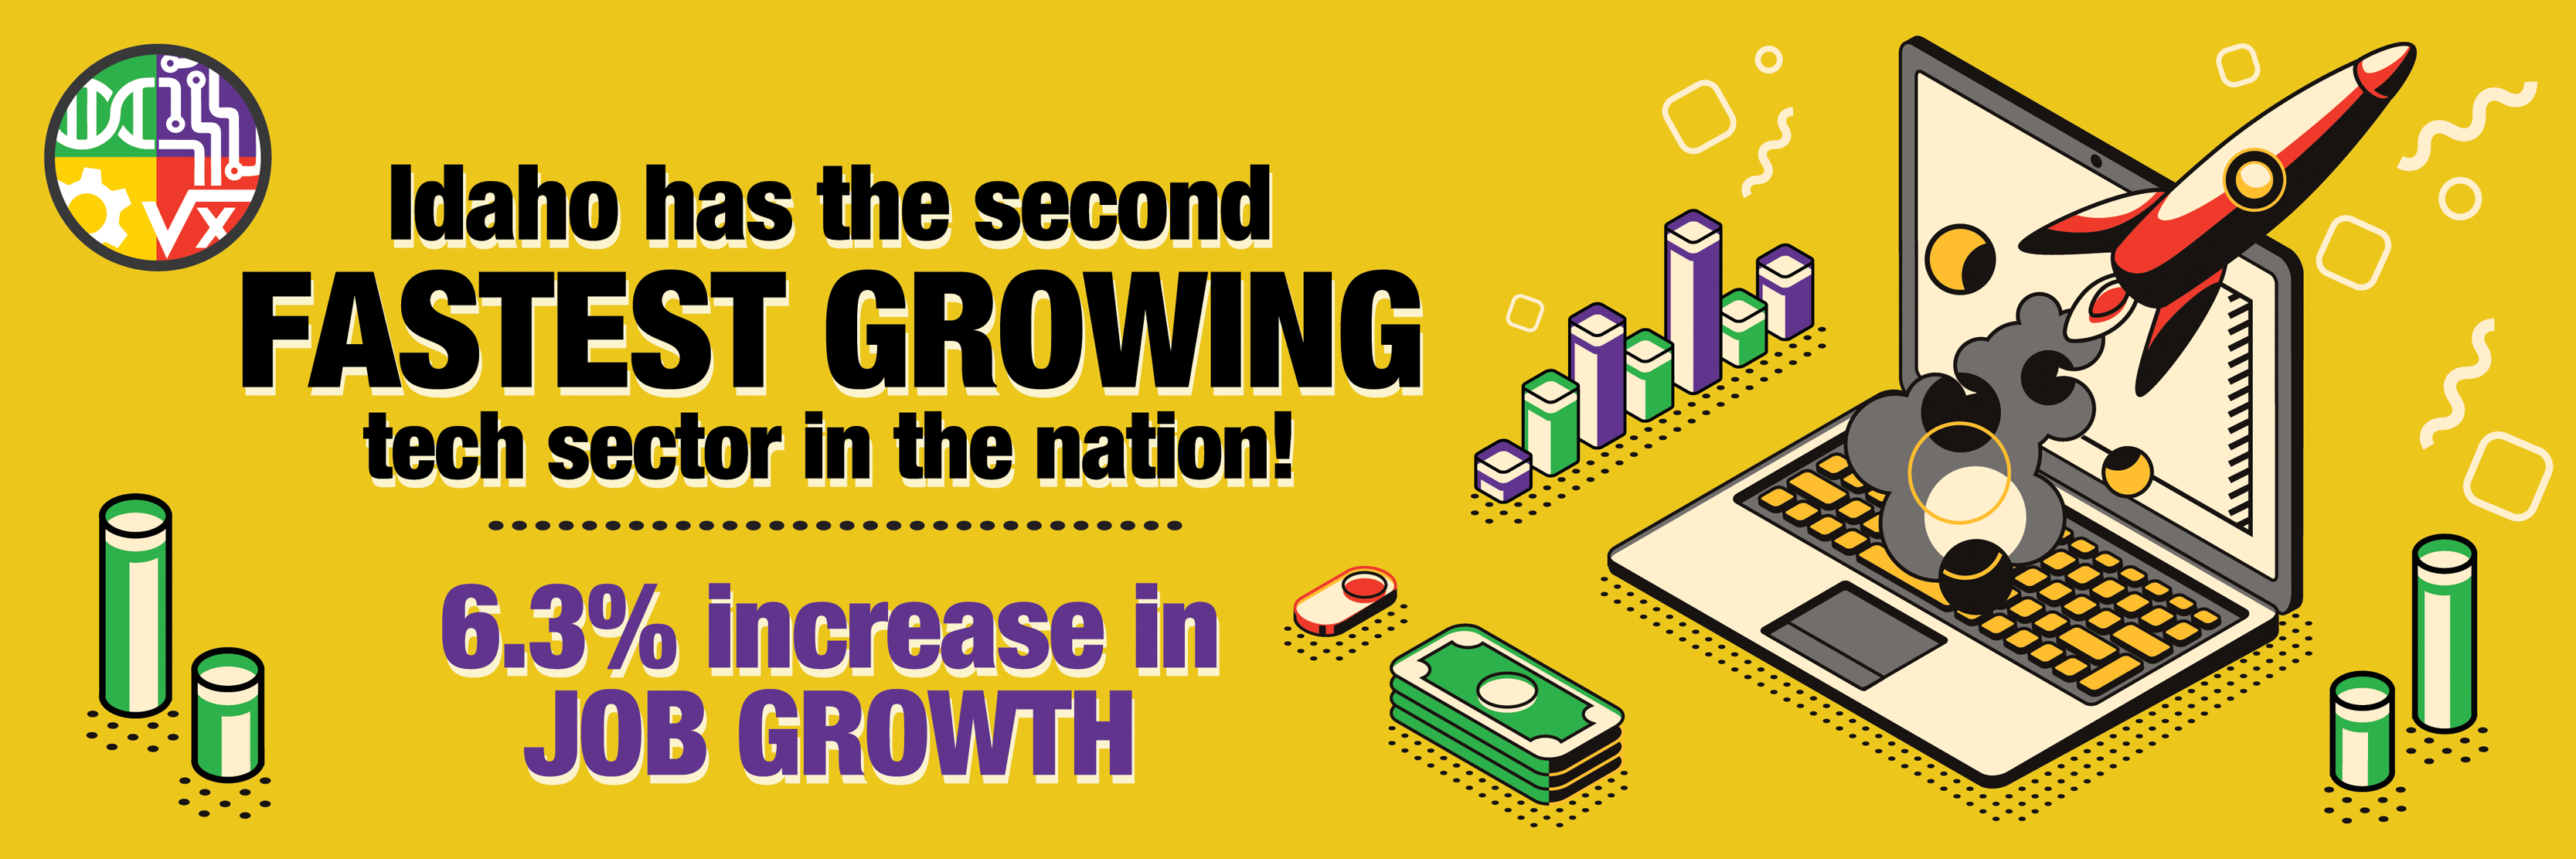 Idaho has the second fastest growing tech sector in the nation!